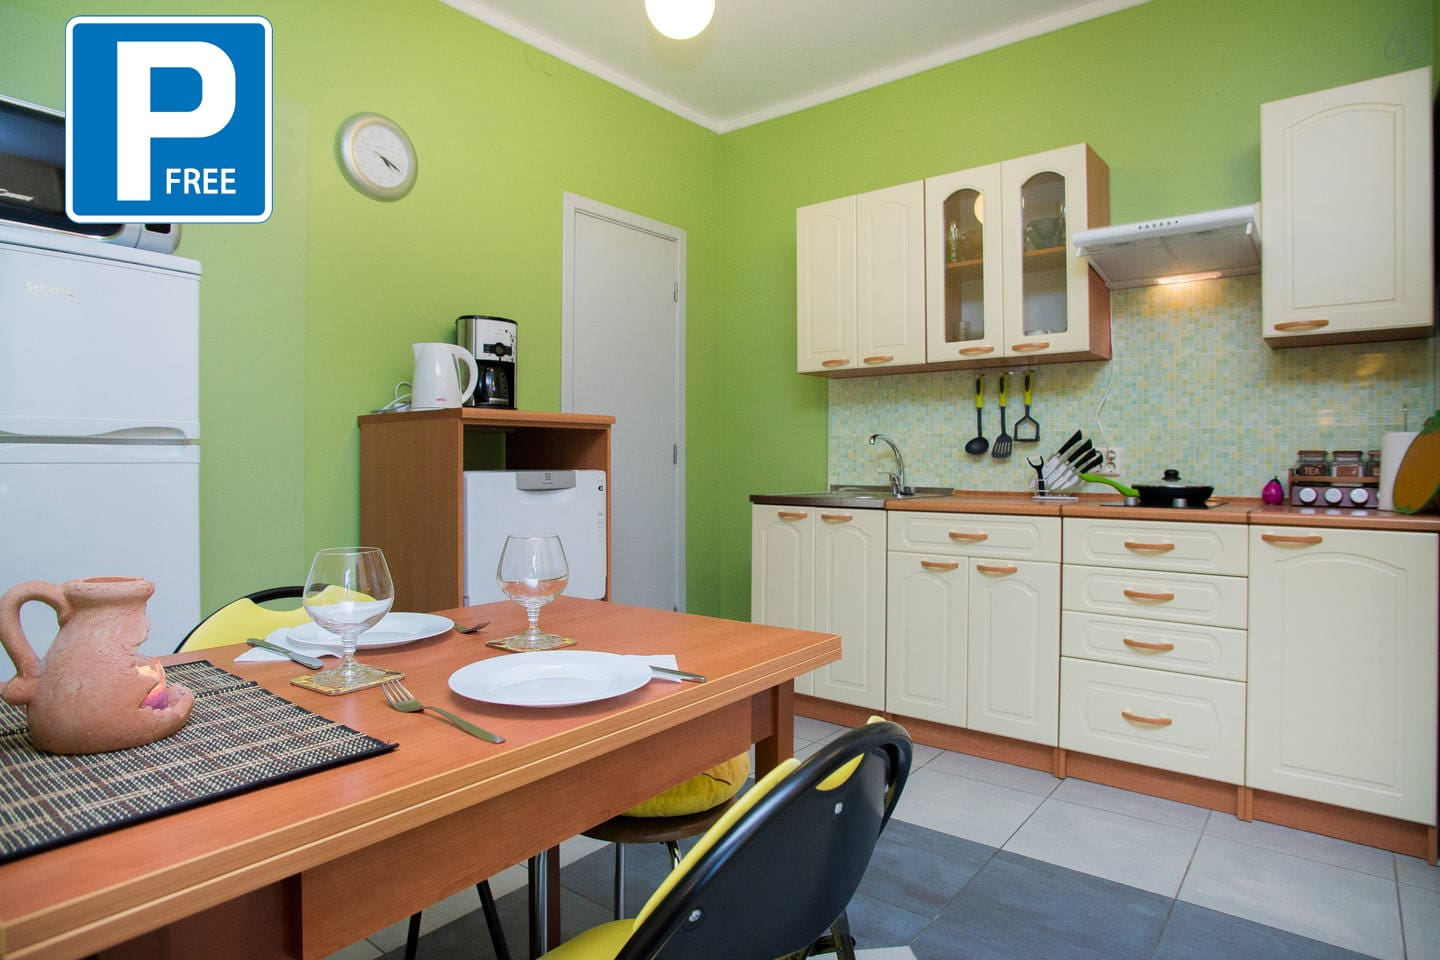 Fully equipped kitchen with dishwasher, coffee machine, sandwich maker, etc